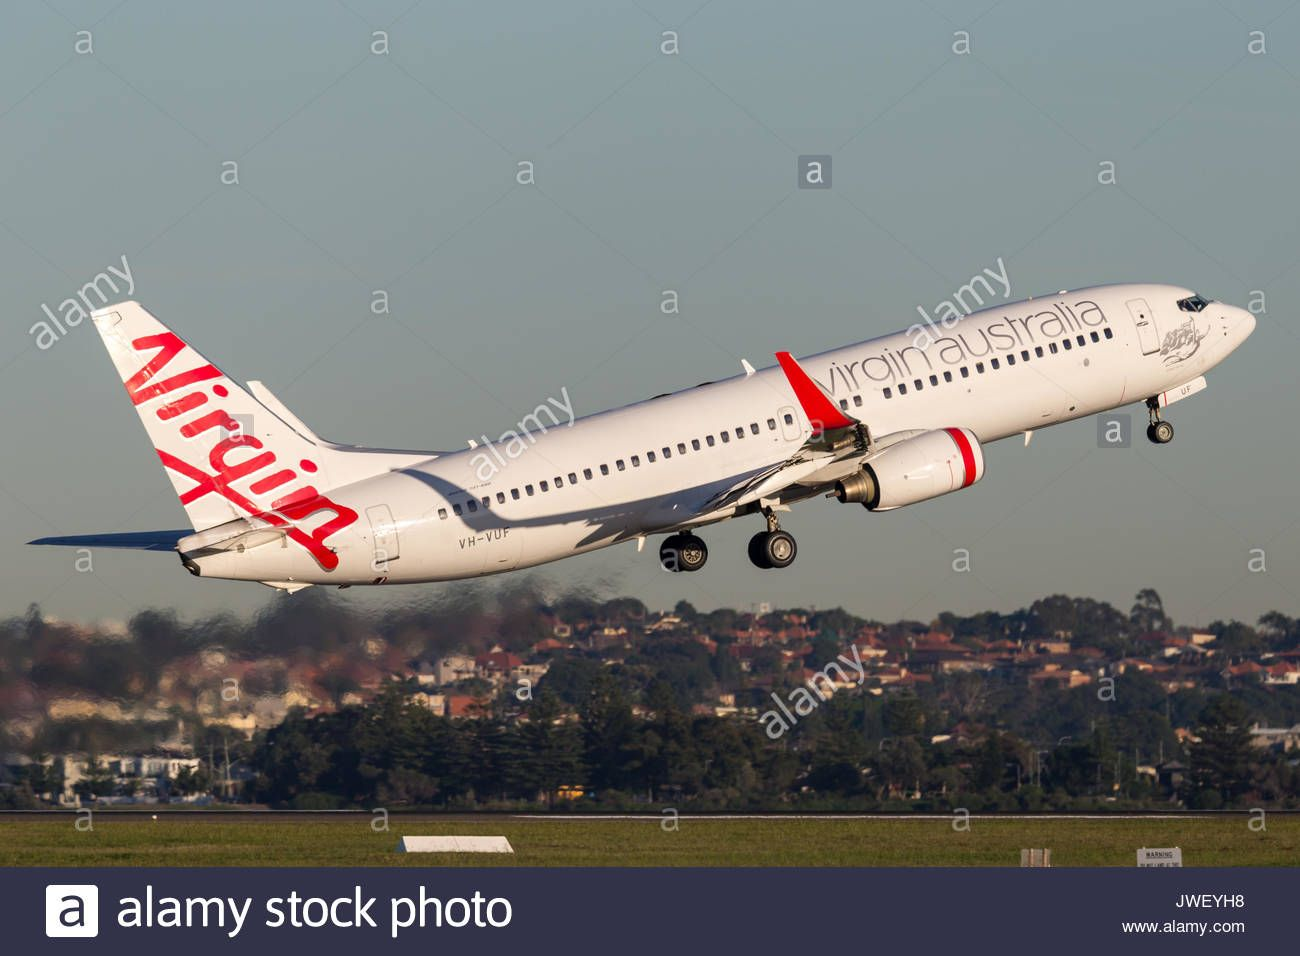 Virgin Australia Airlines Reservation Phone Number Just Dial 1 877 294 2845 Book Low Cost In Australia Flight Ticke Airline Booking Airlines Australia Flights